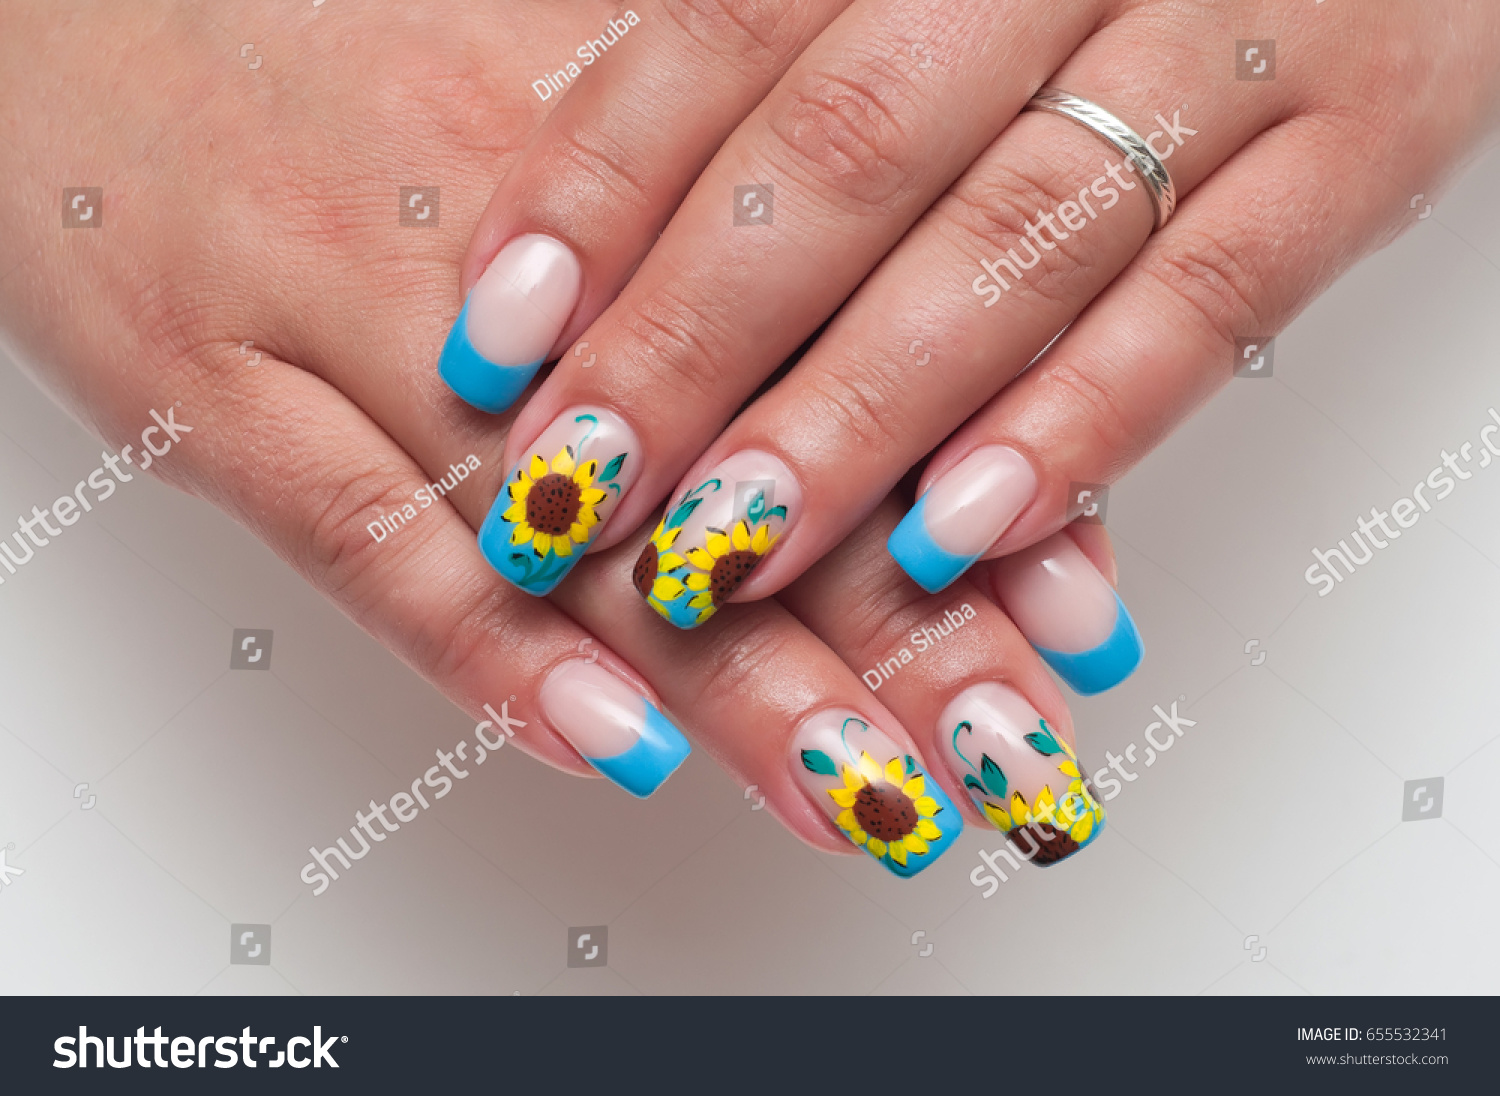 French Blue Manicure On Long Square Stock Photo (Royalty Free ...